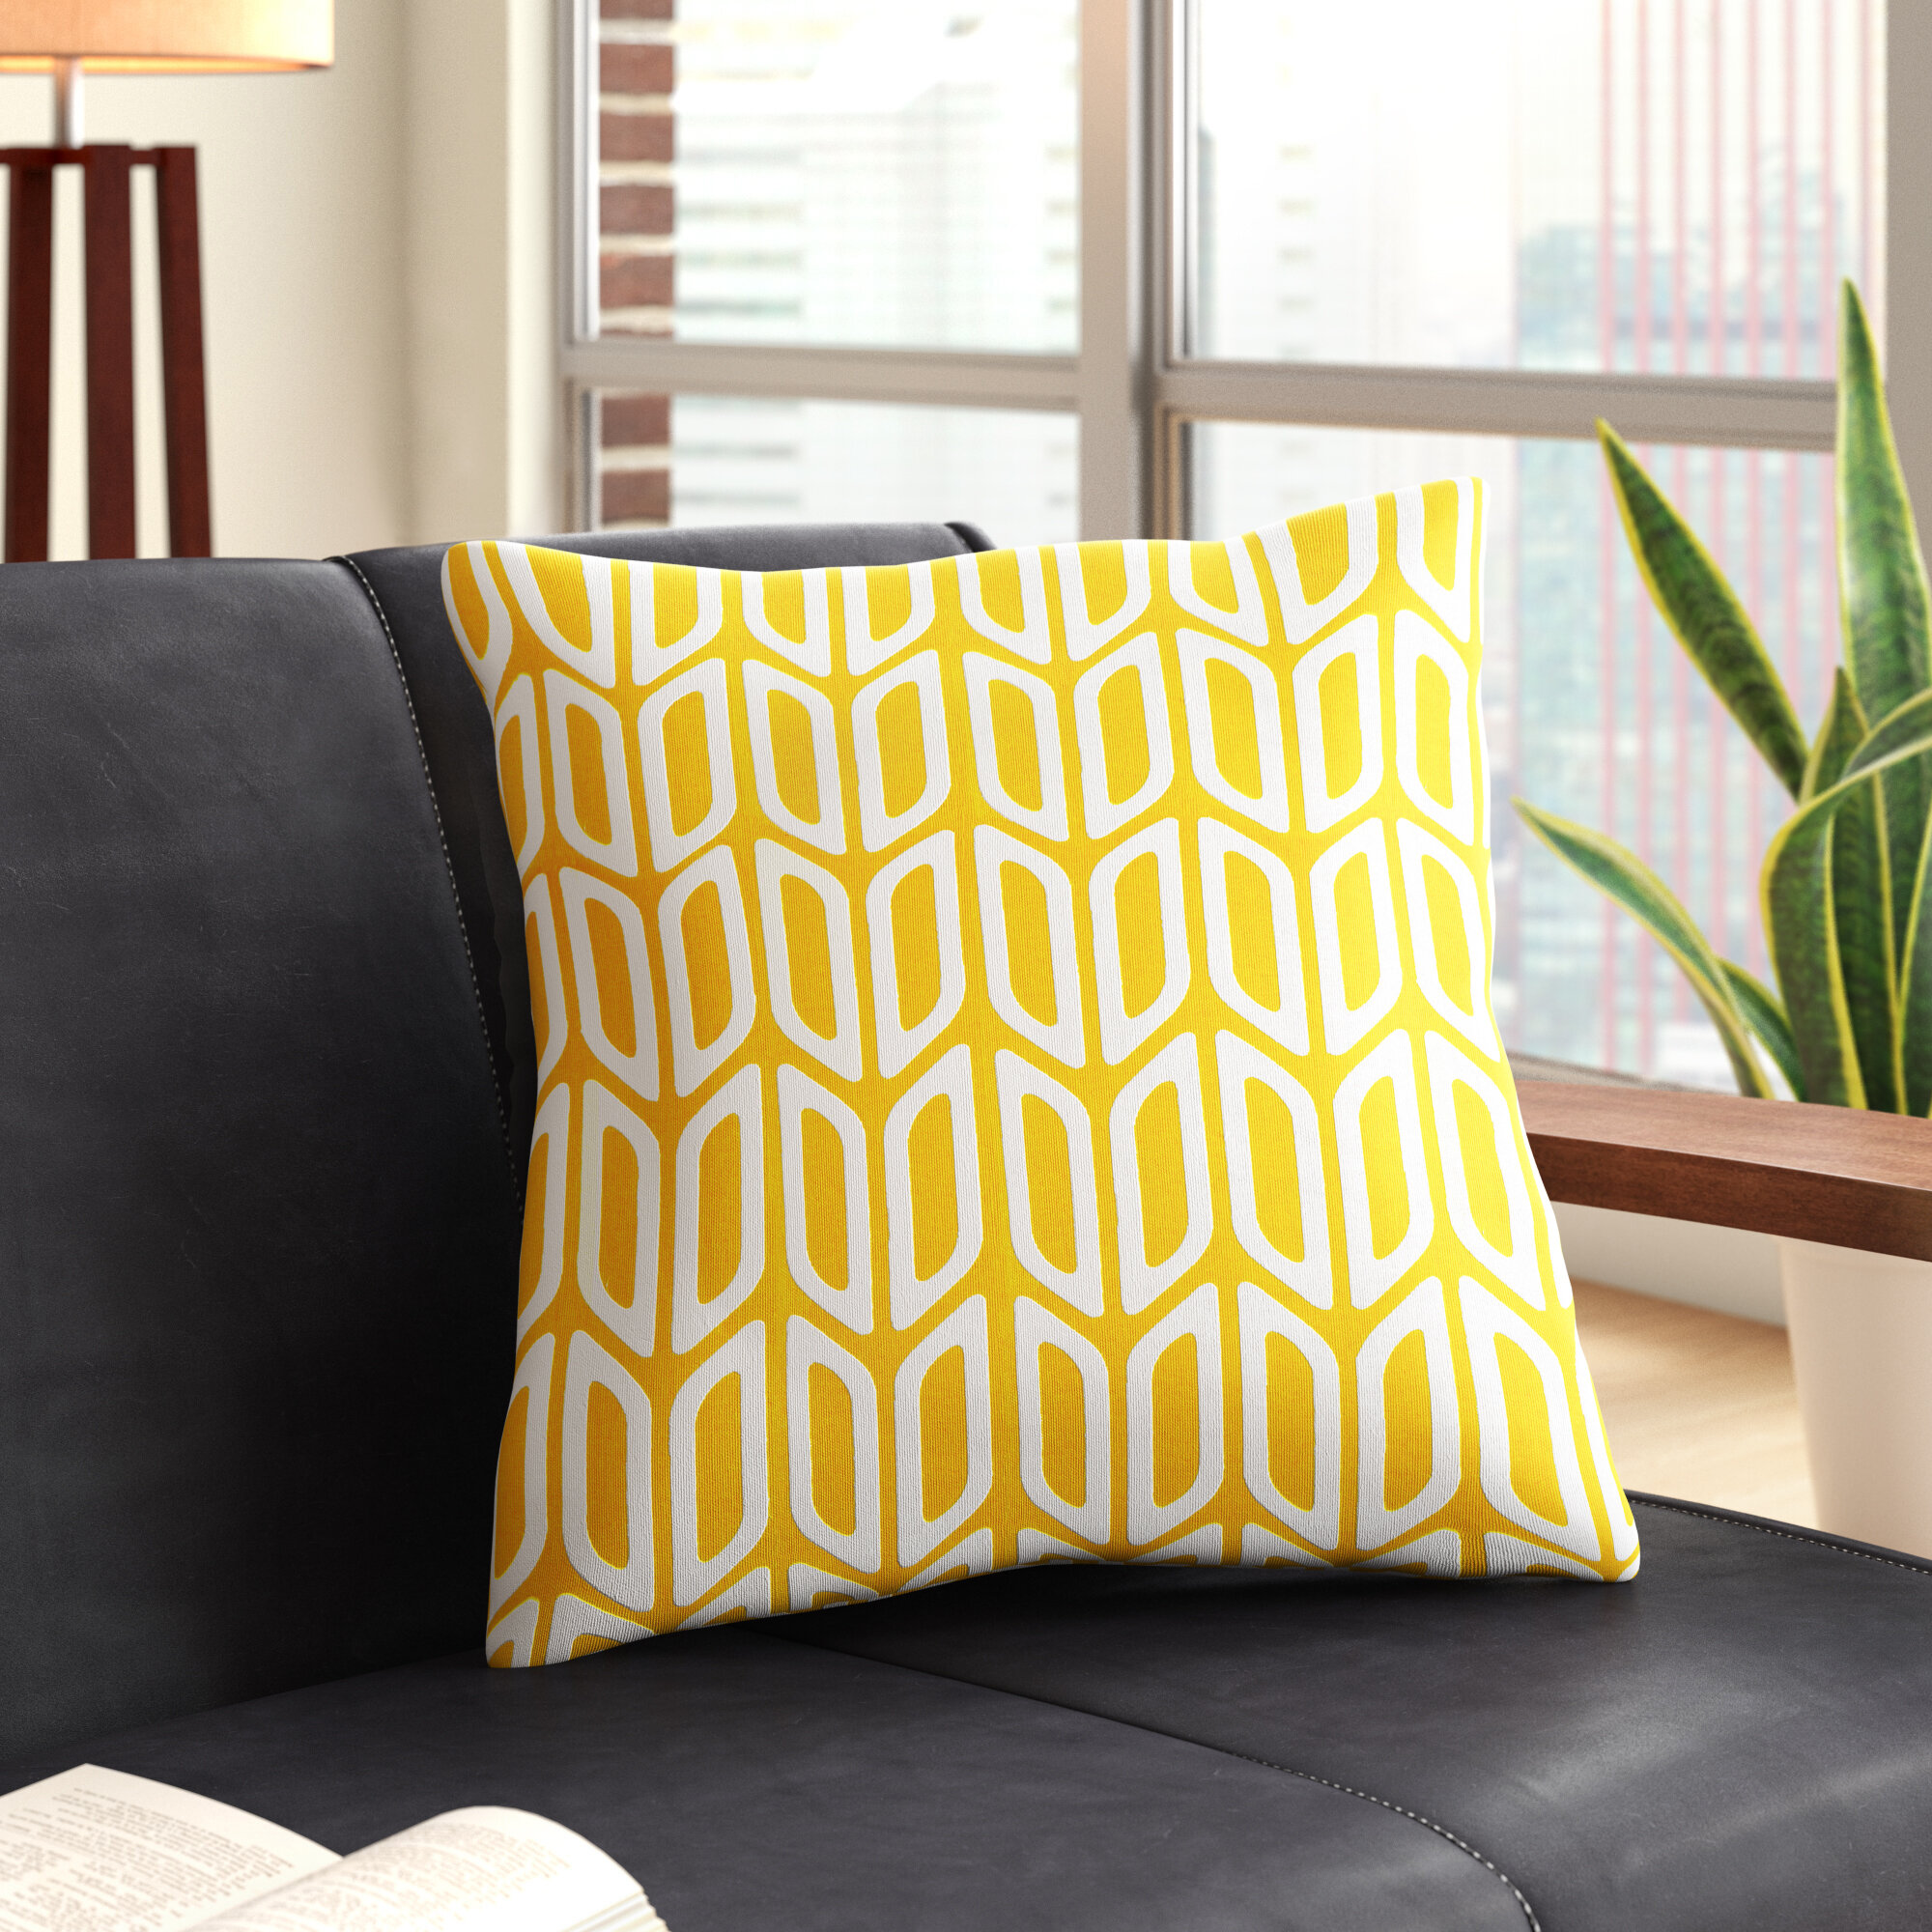 George Oliver Izabelle Geometric Cotton Throw Pillow Cover Reviews Wayfair